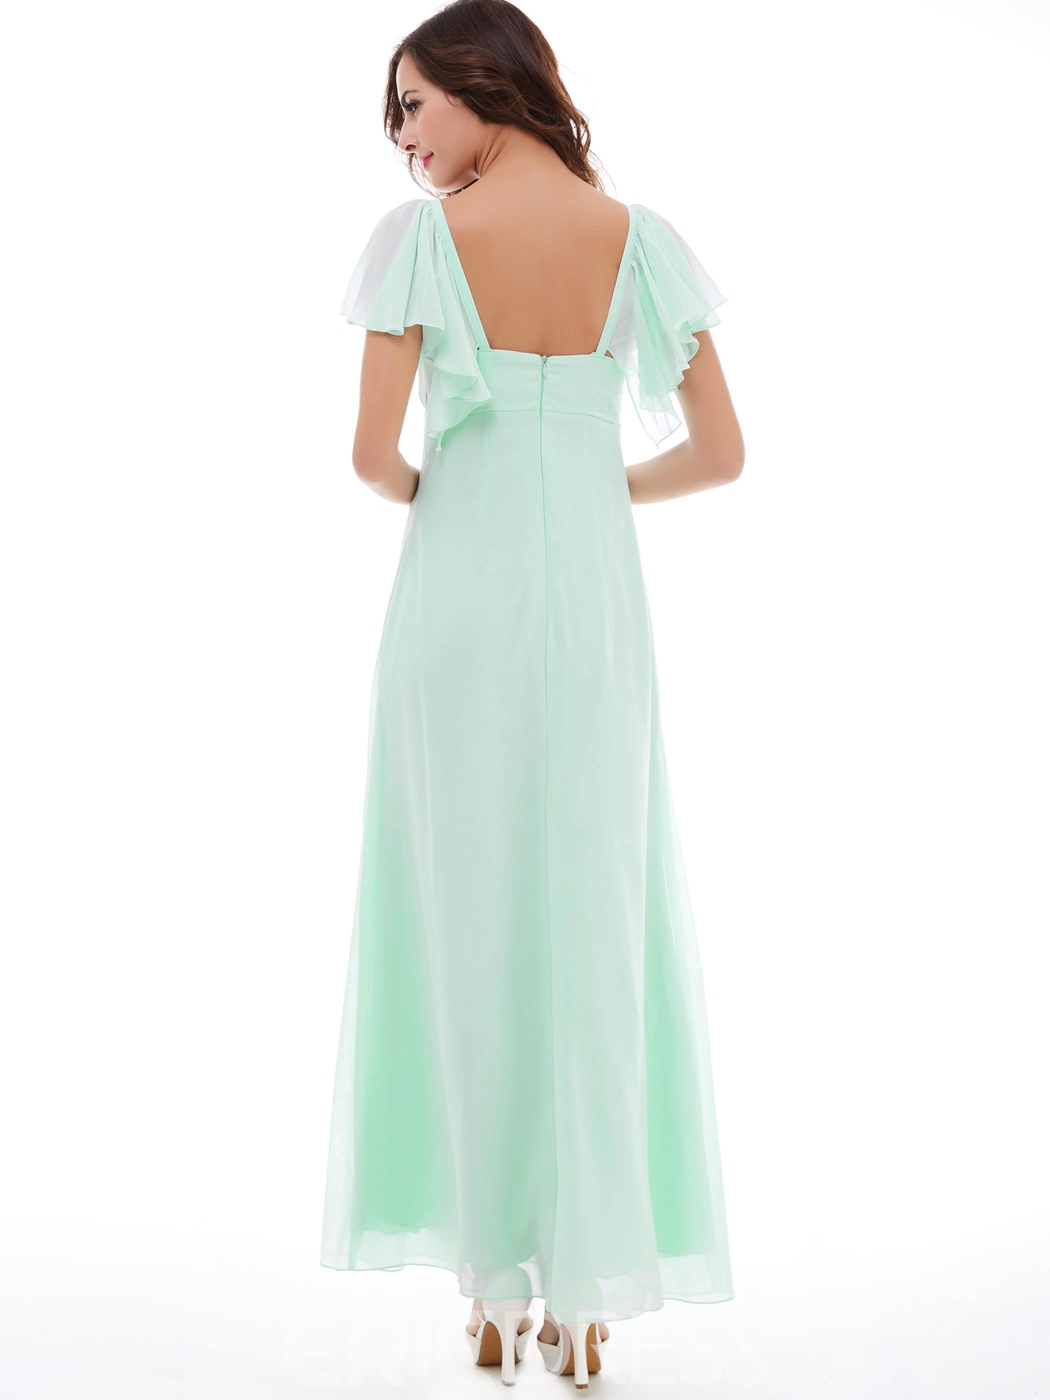 Ericdress A-Line Square Neckline Chiffon Long Prom Dress